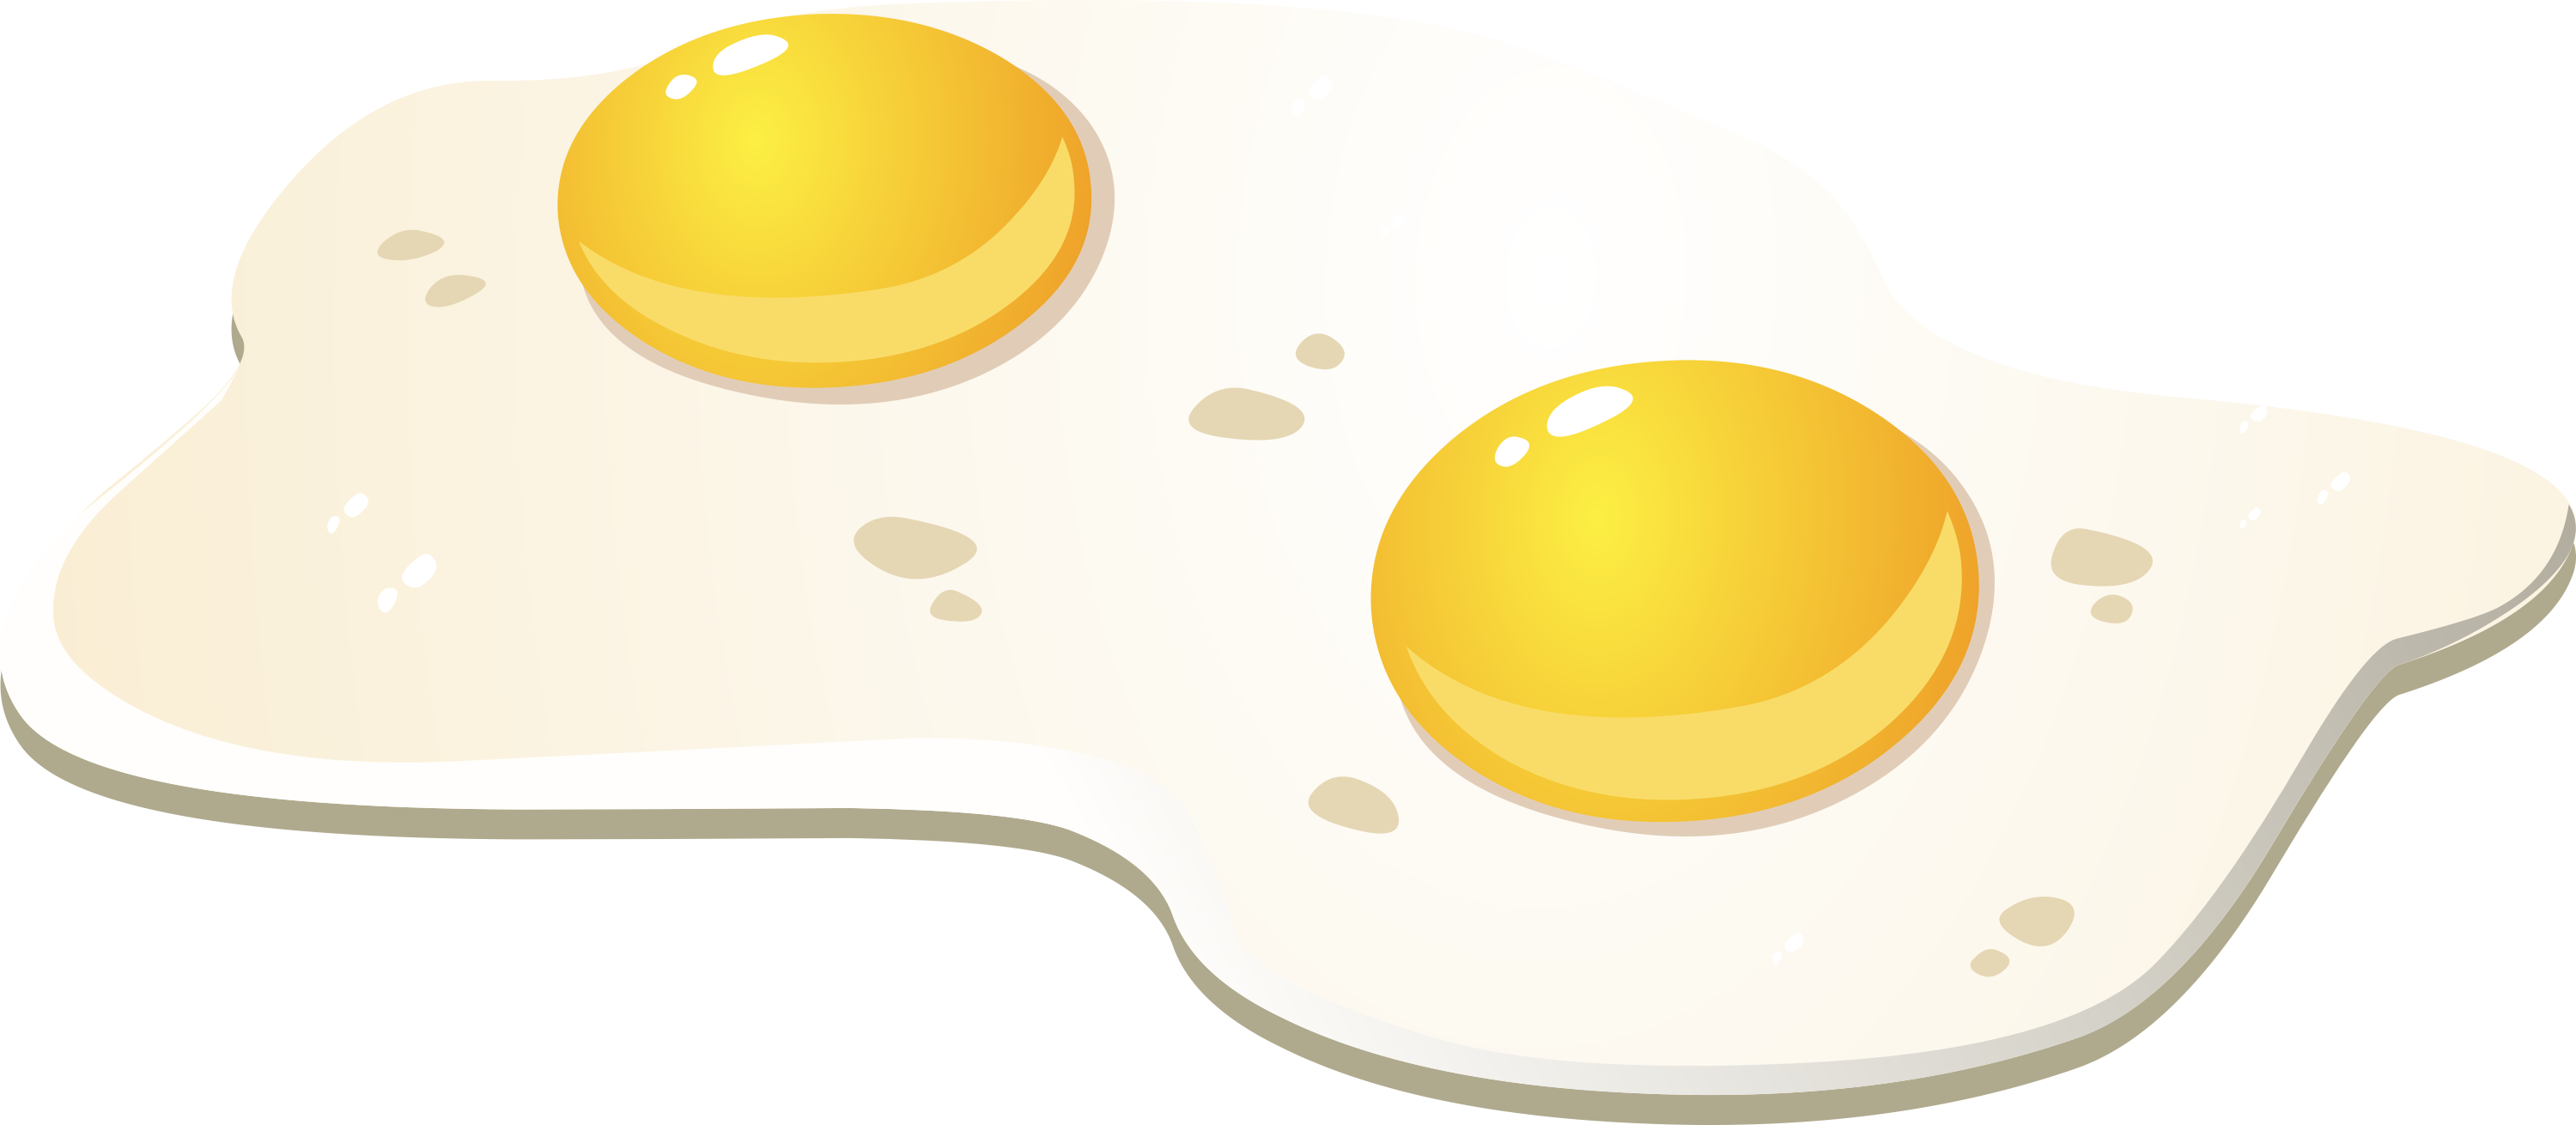 png black and white stock Fry Egg PNG Transparent Fry Egg